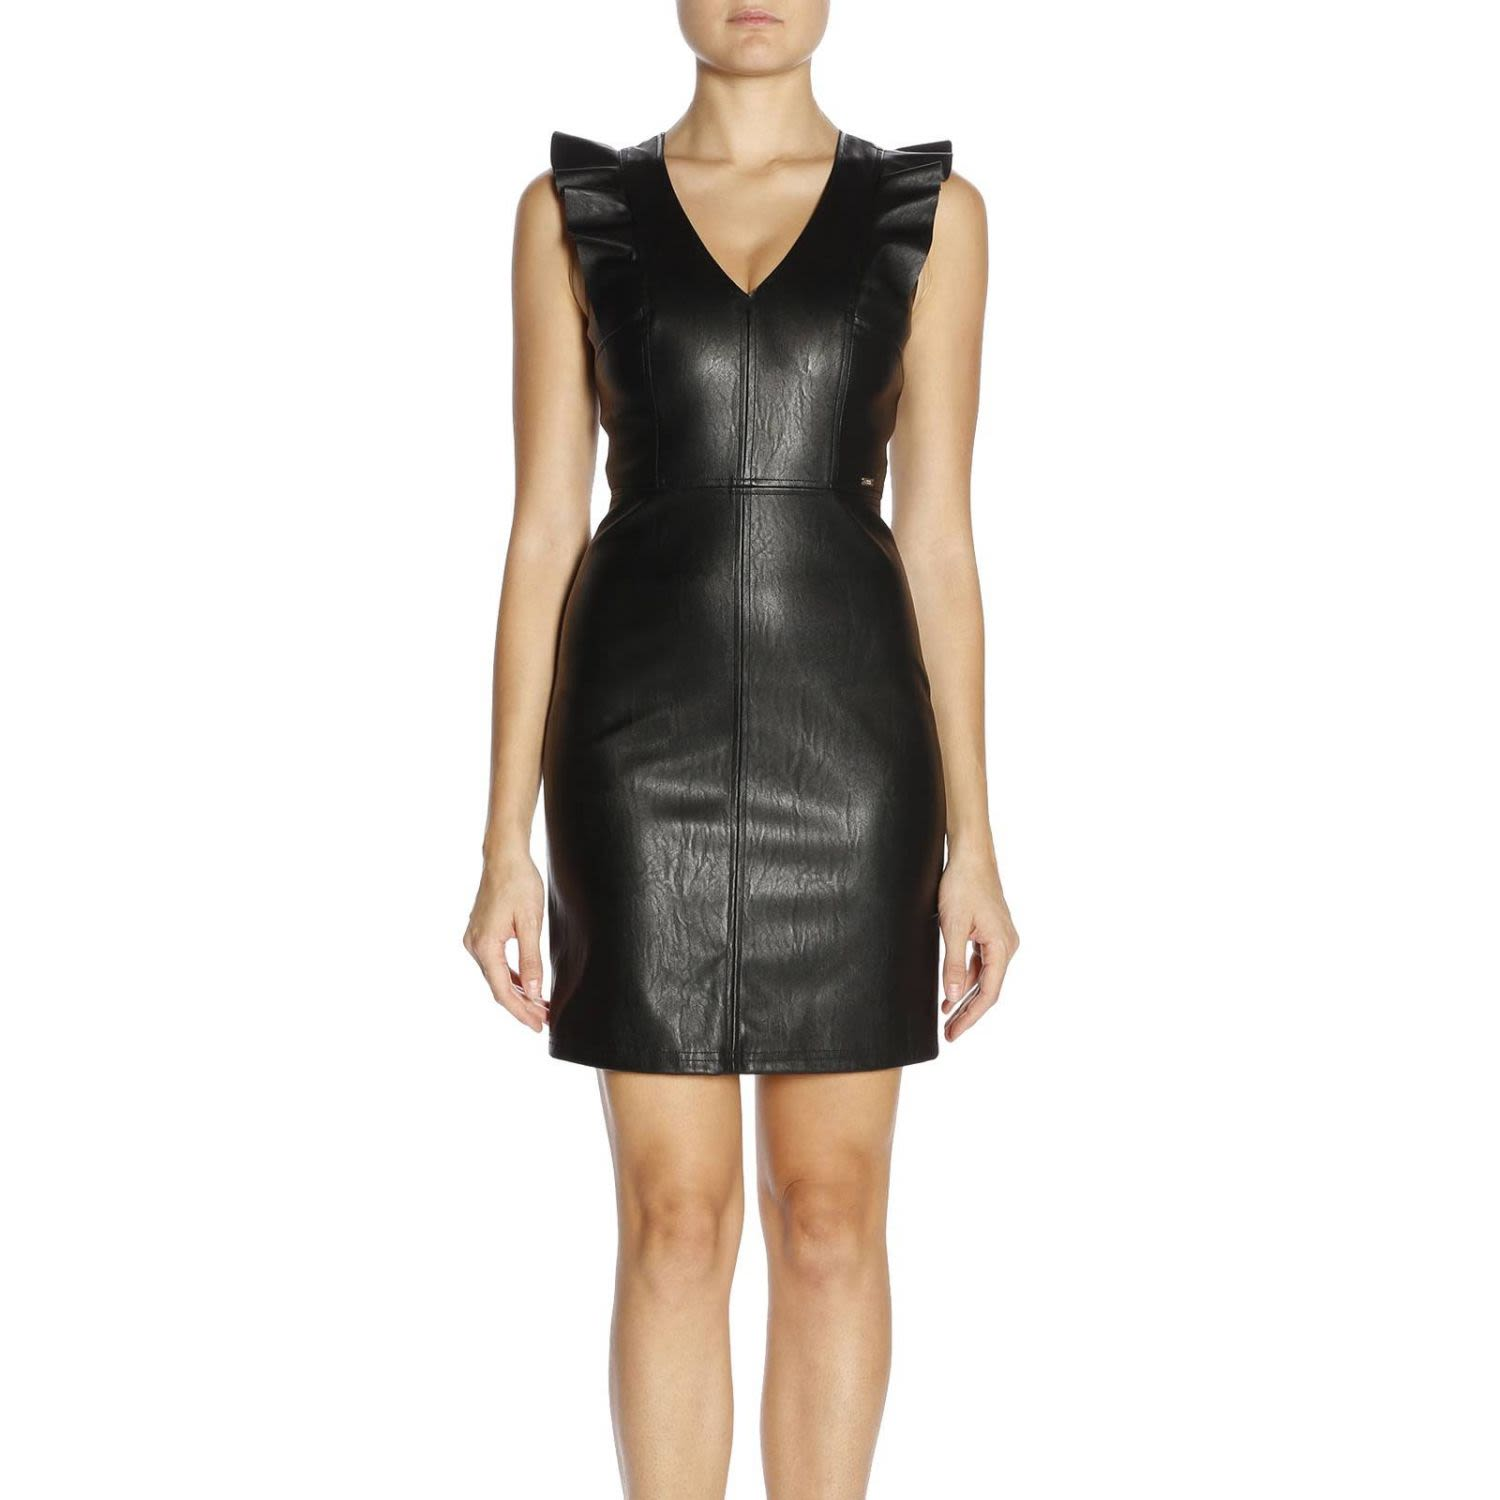 armani collezioni - Armani Exchange Dress Dress Women Armani Exchange